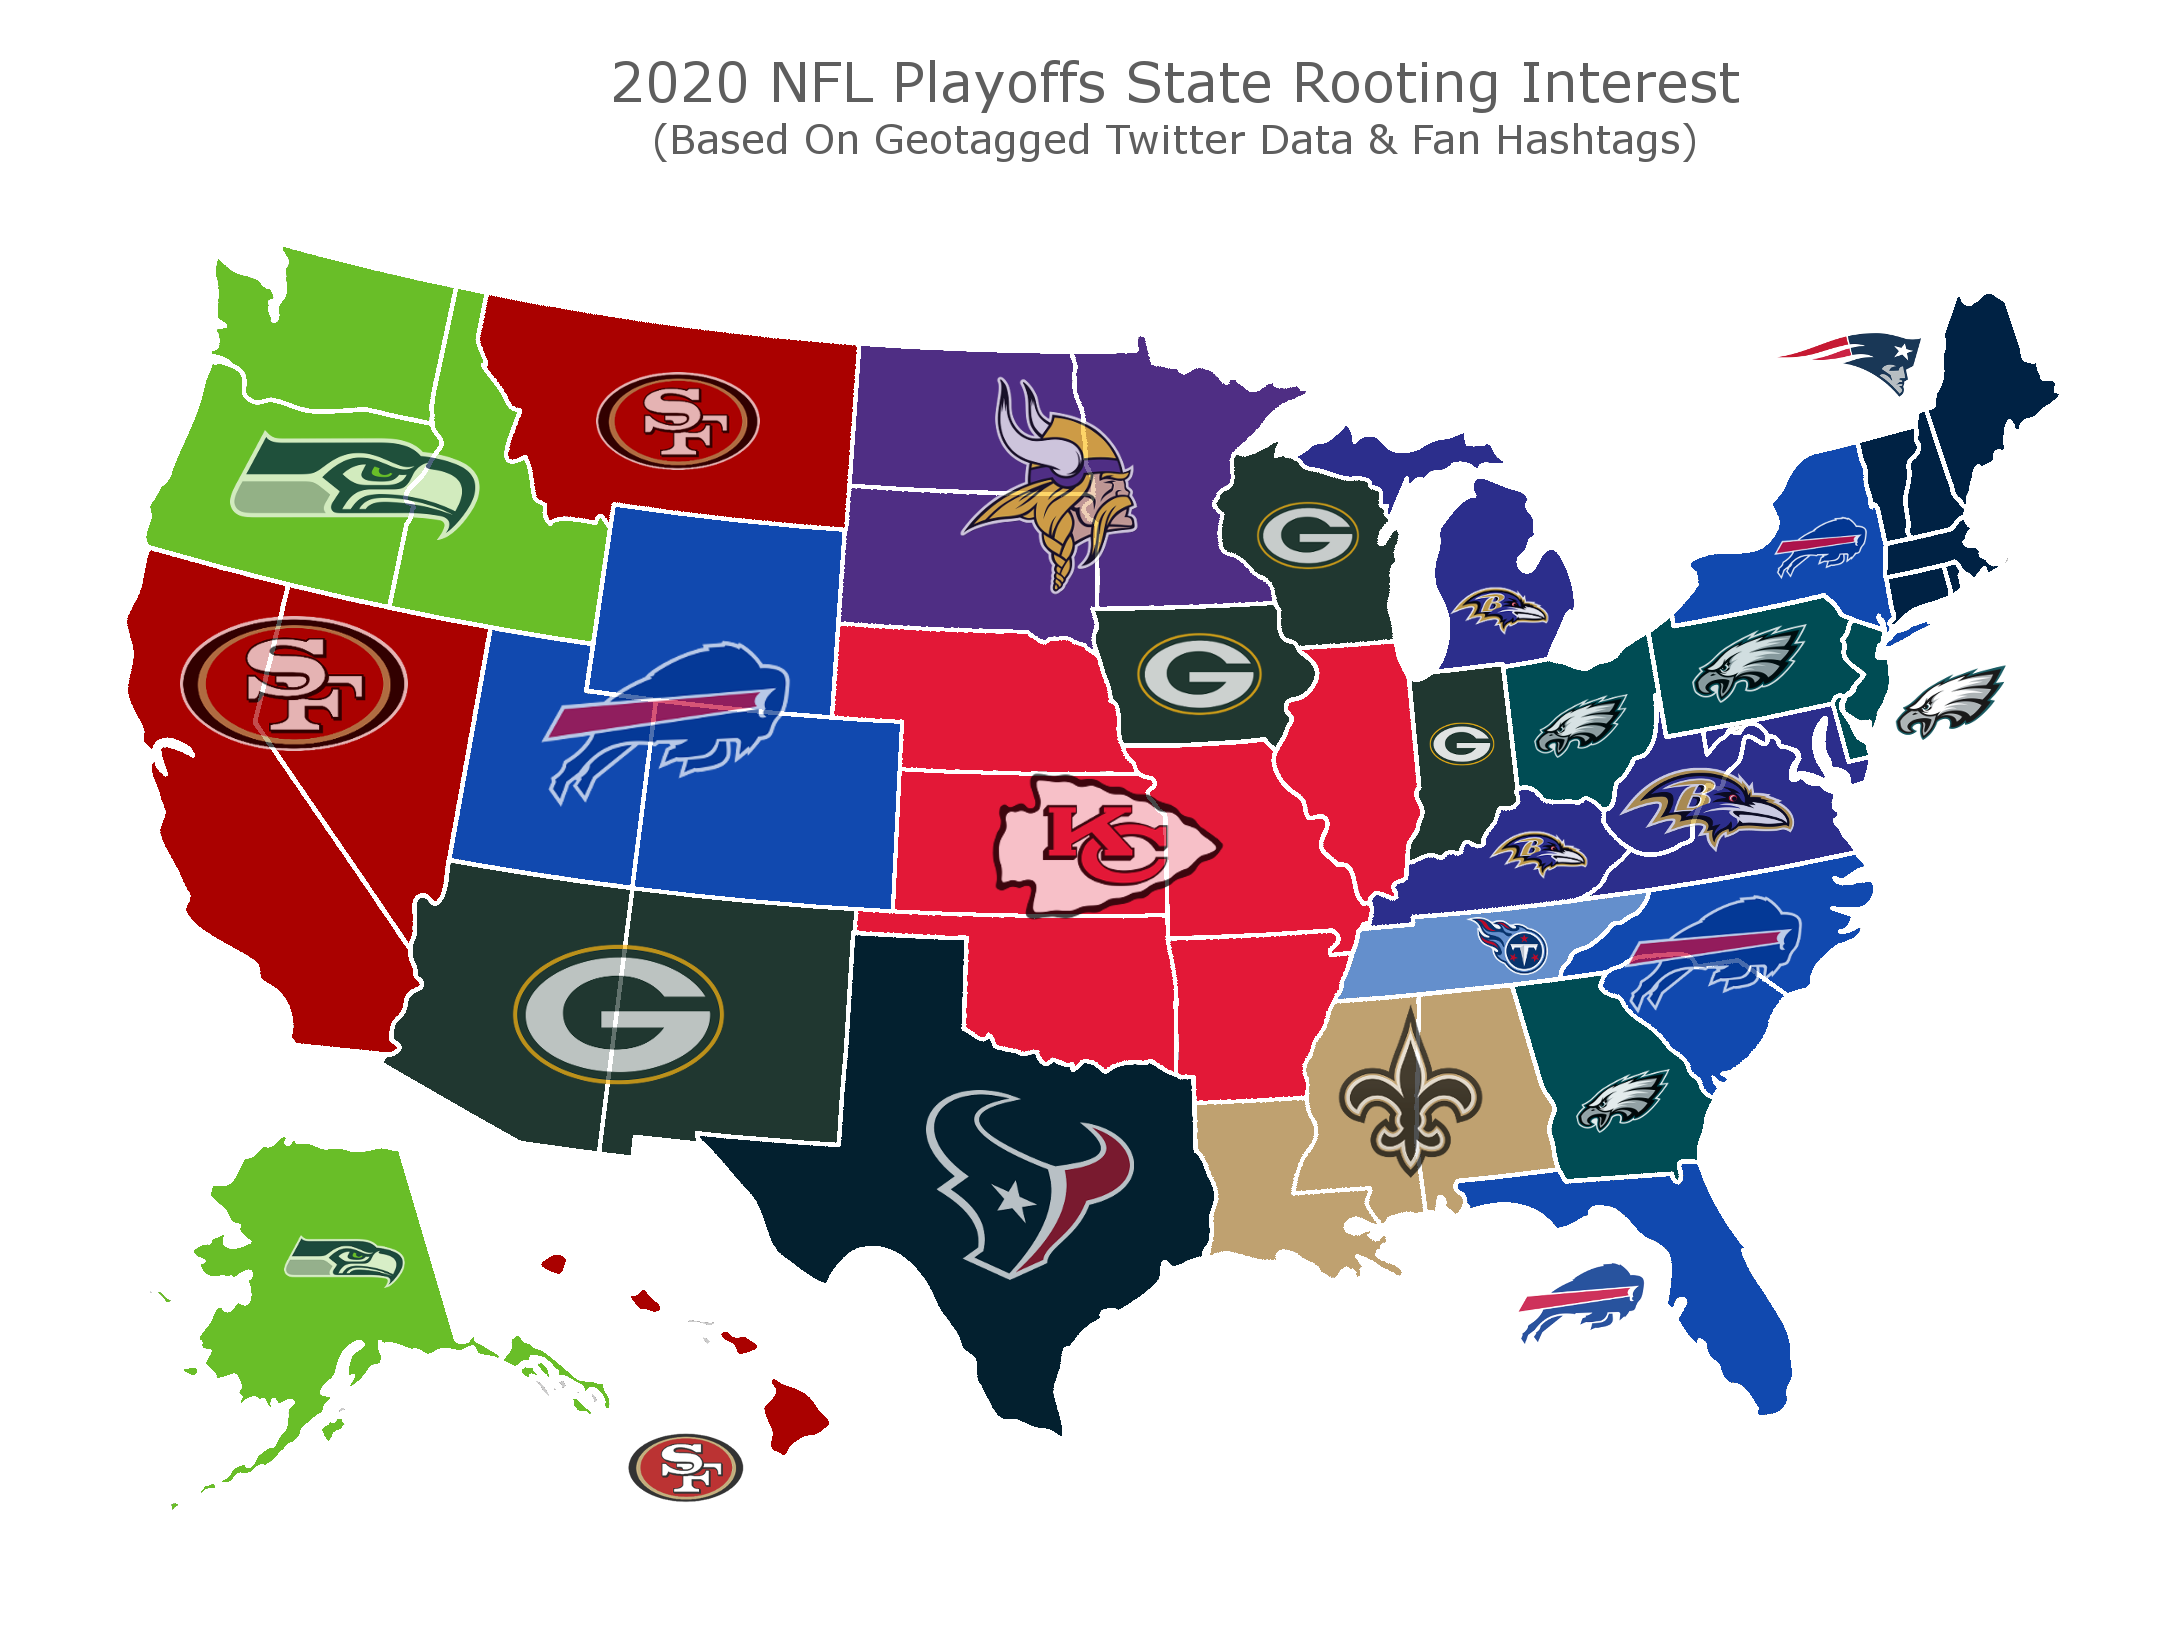 Buffalo Bills Most Popular Nfl Playoff Team According To Geo Targeted Analytics Syracuse Com